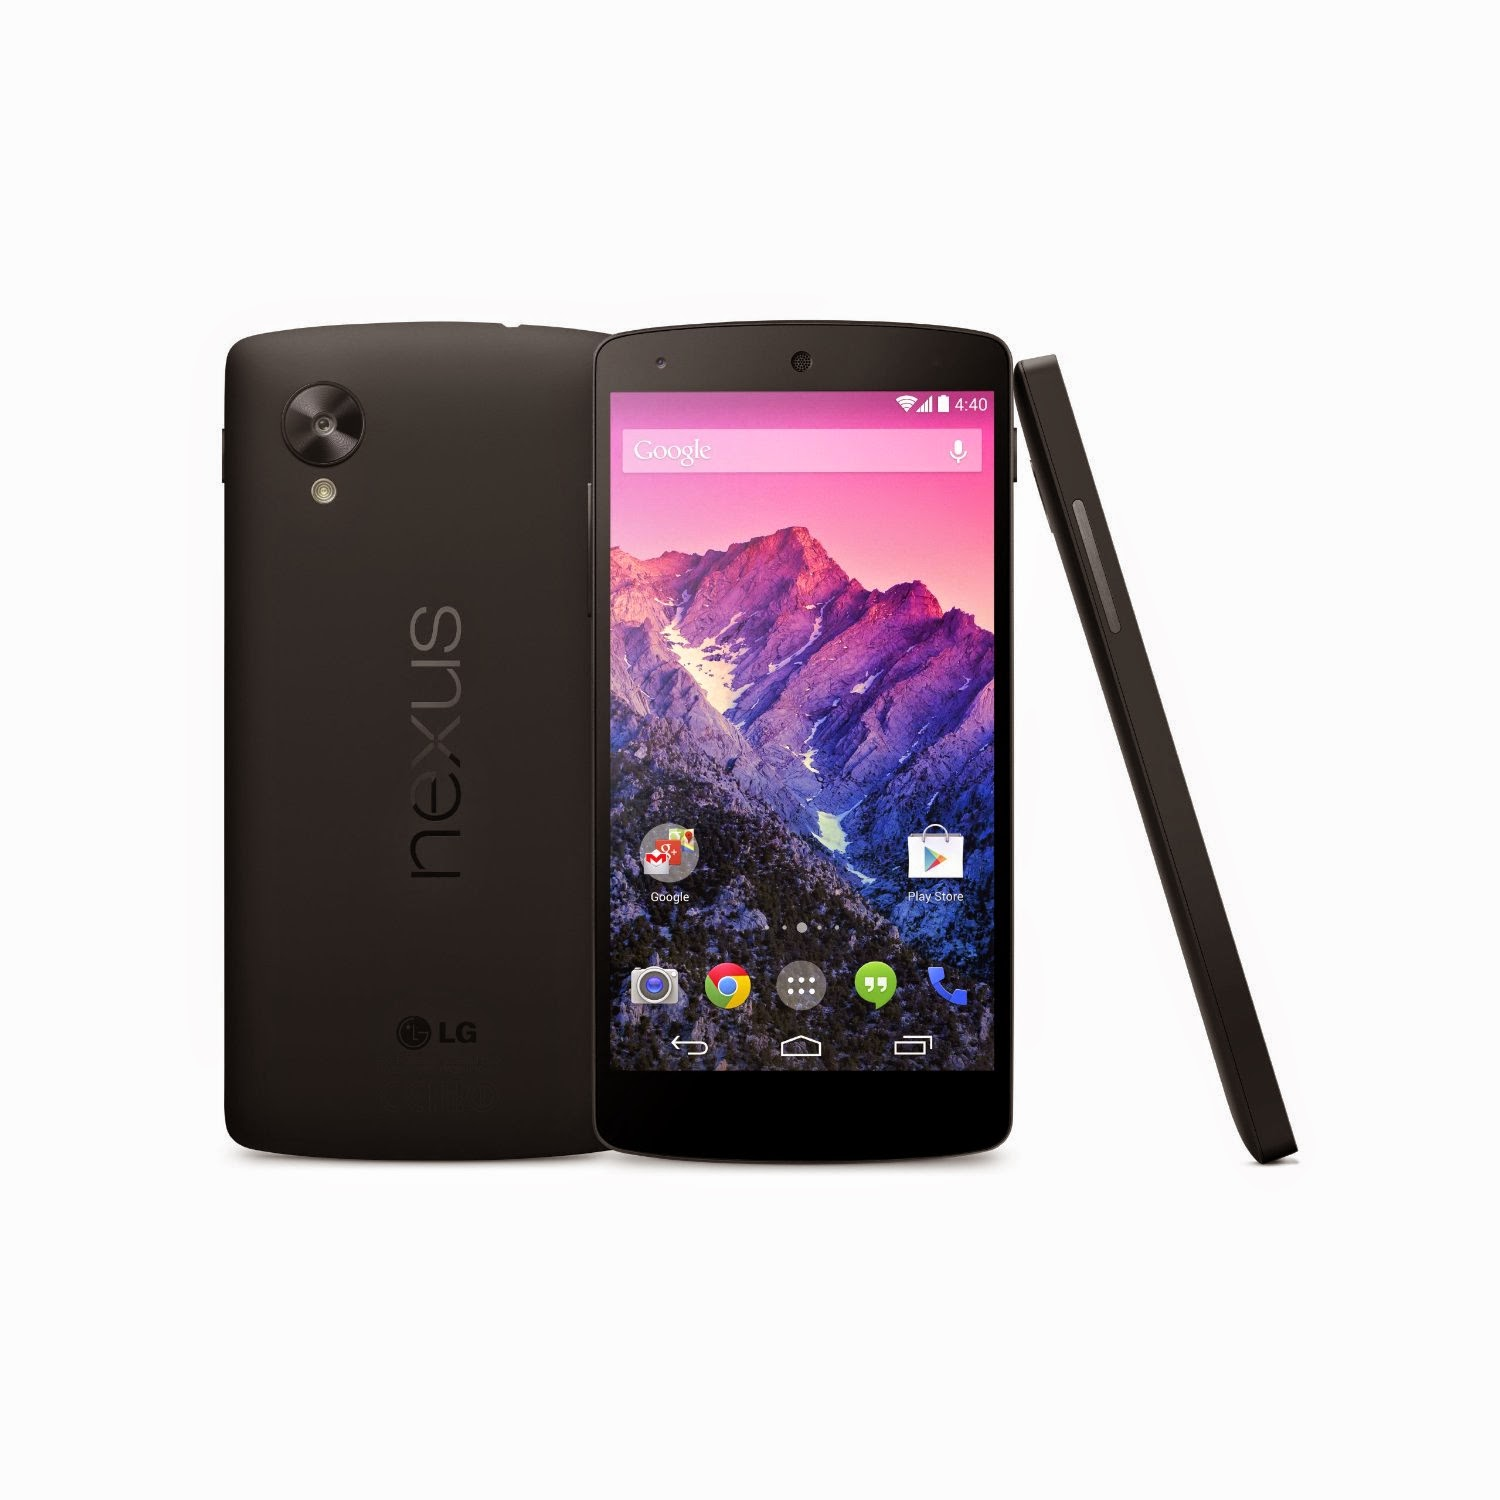 LG Nexus 5 Smartphone - 16GB, UK Version (Black)